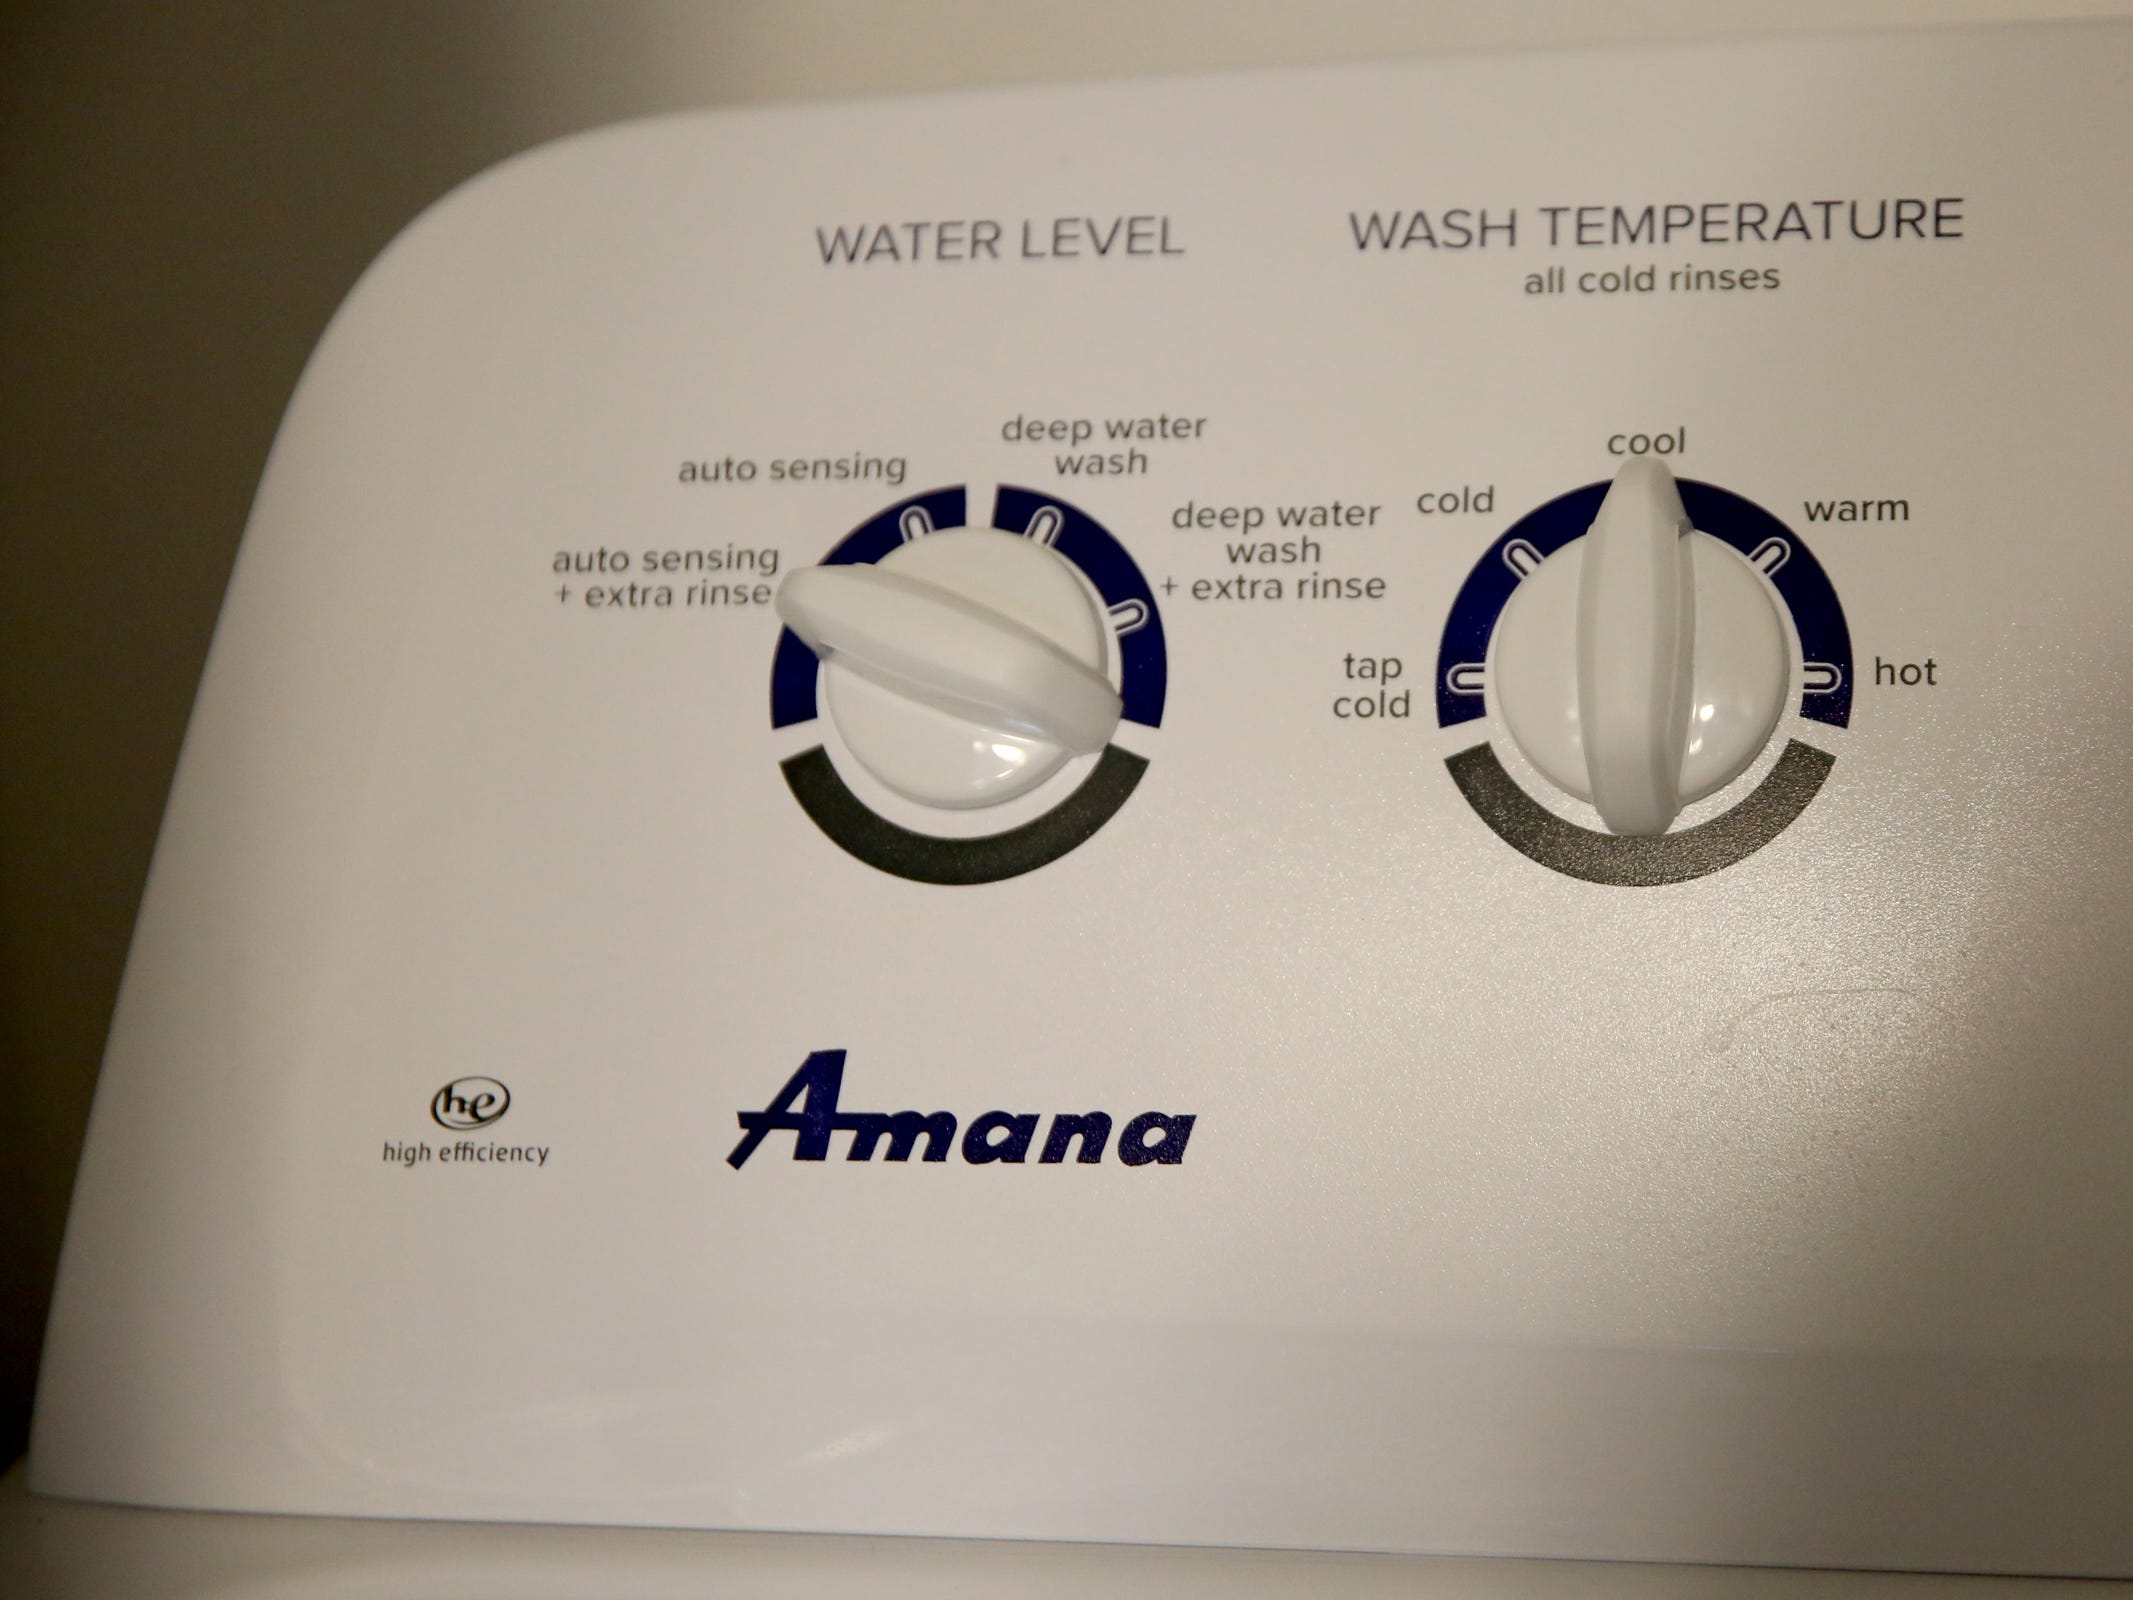 A high efficiency washer and dryer at the Cornerstone Apartments in Salem on Wednesday, Jan. 16, 2019. The state is looking to reduce the energy burden for low-income Oregonians, including tenants at Cornerstone, who must live at or less than 60 percent of the area's median household income.